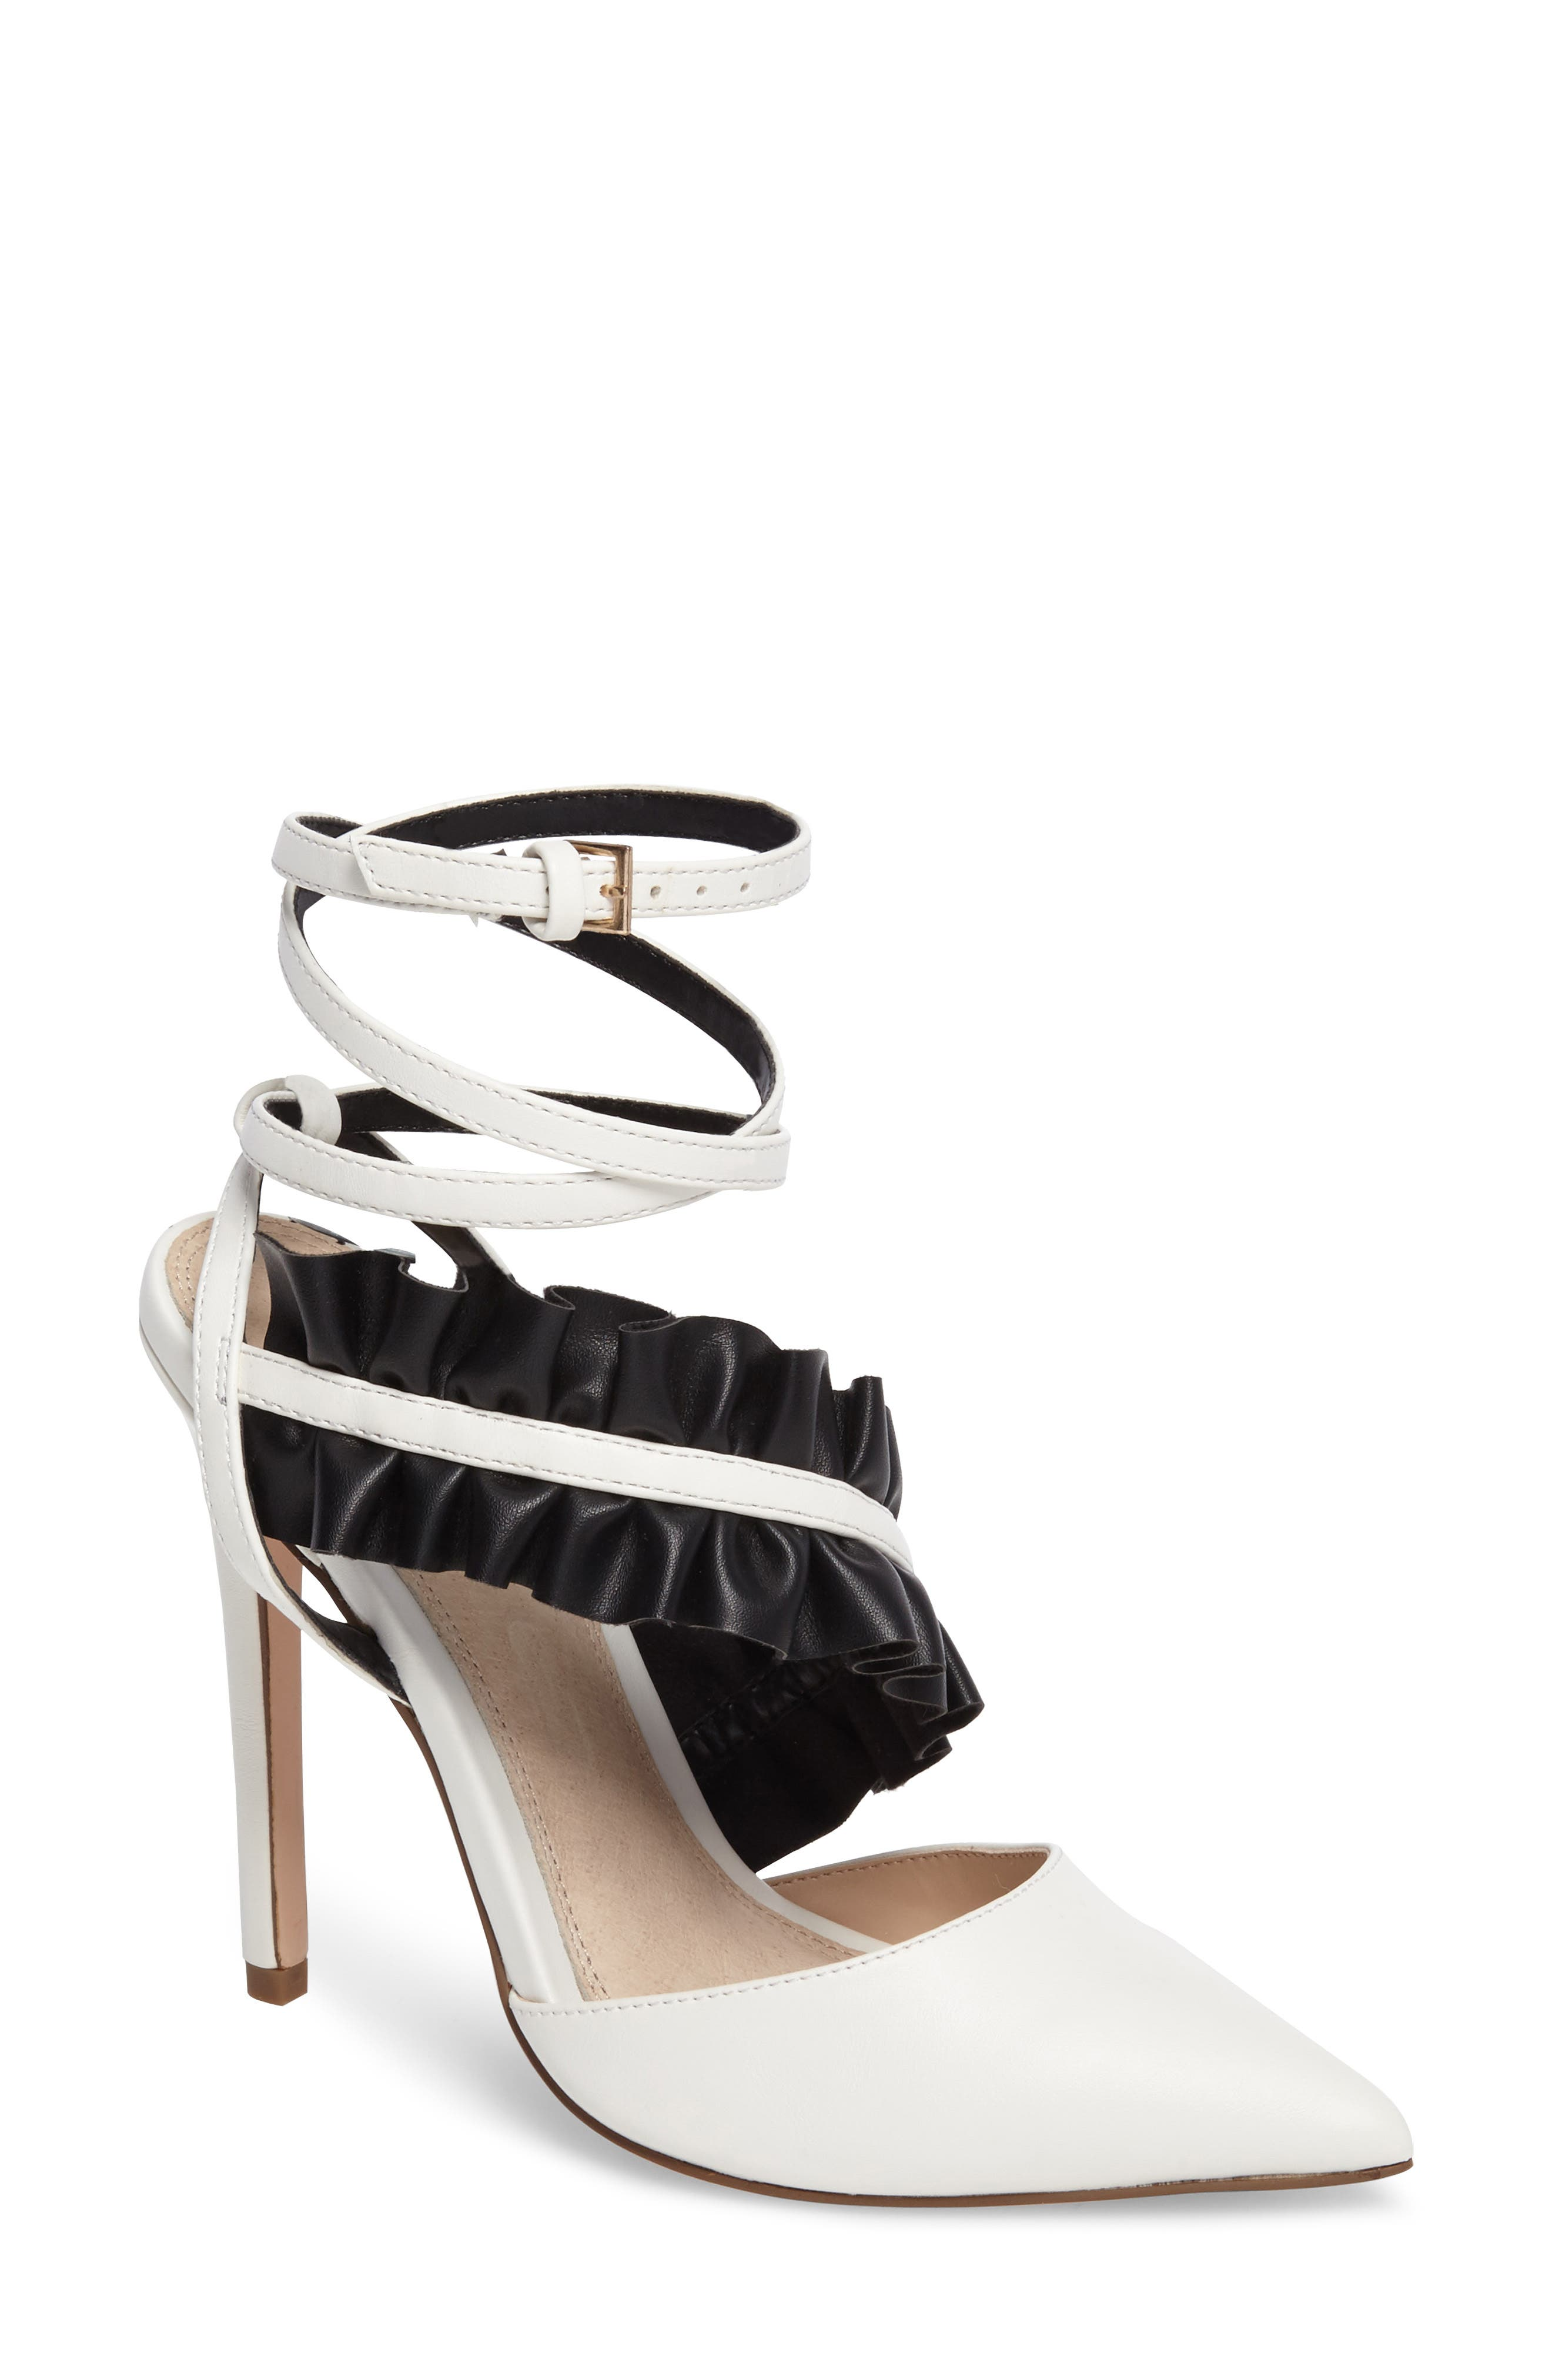 Grill Frill Ankle Strap Pump,                         Main,                         color, White Multi